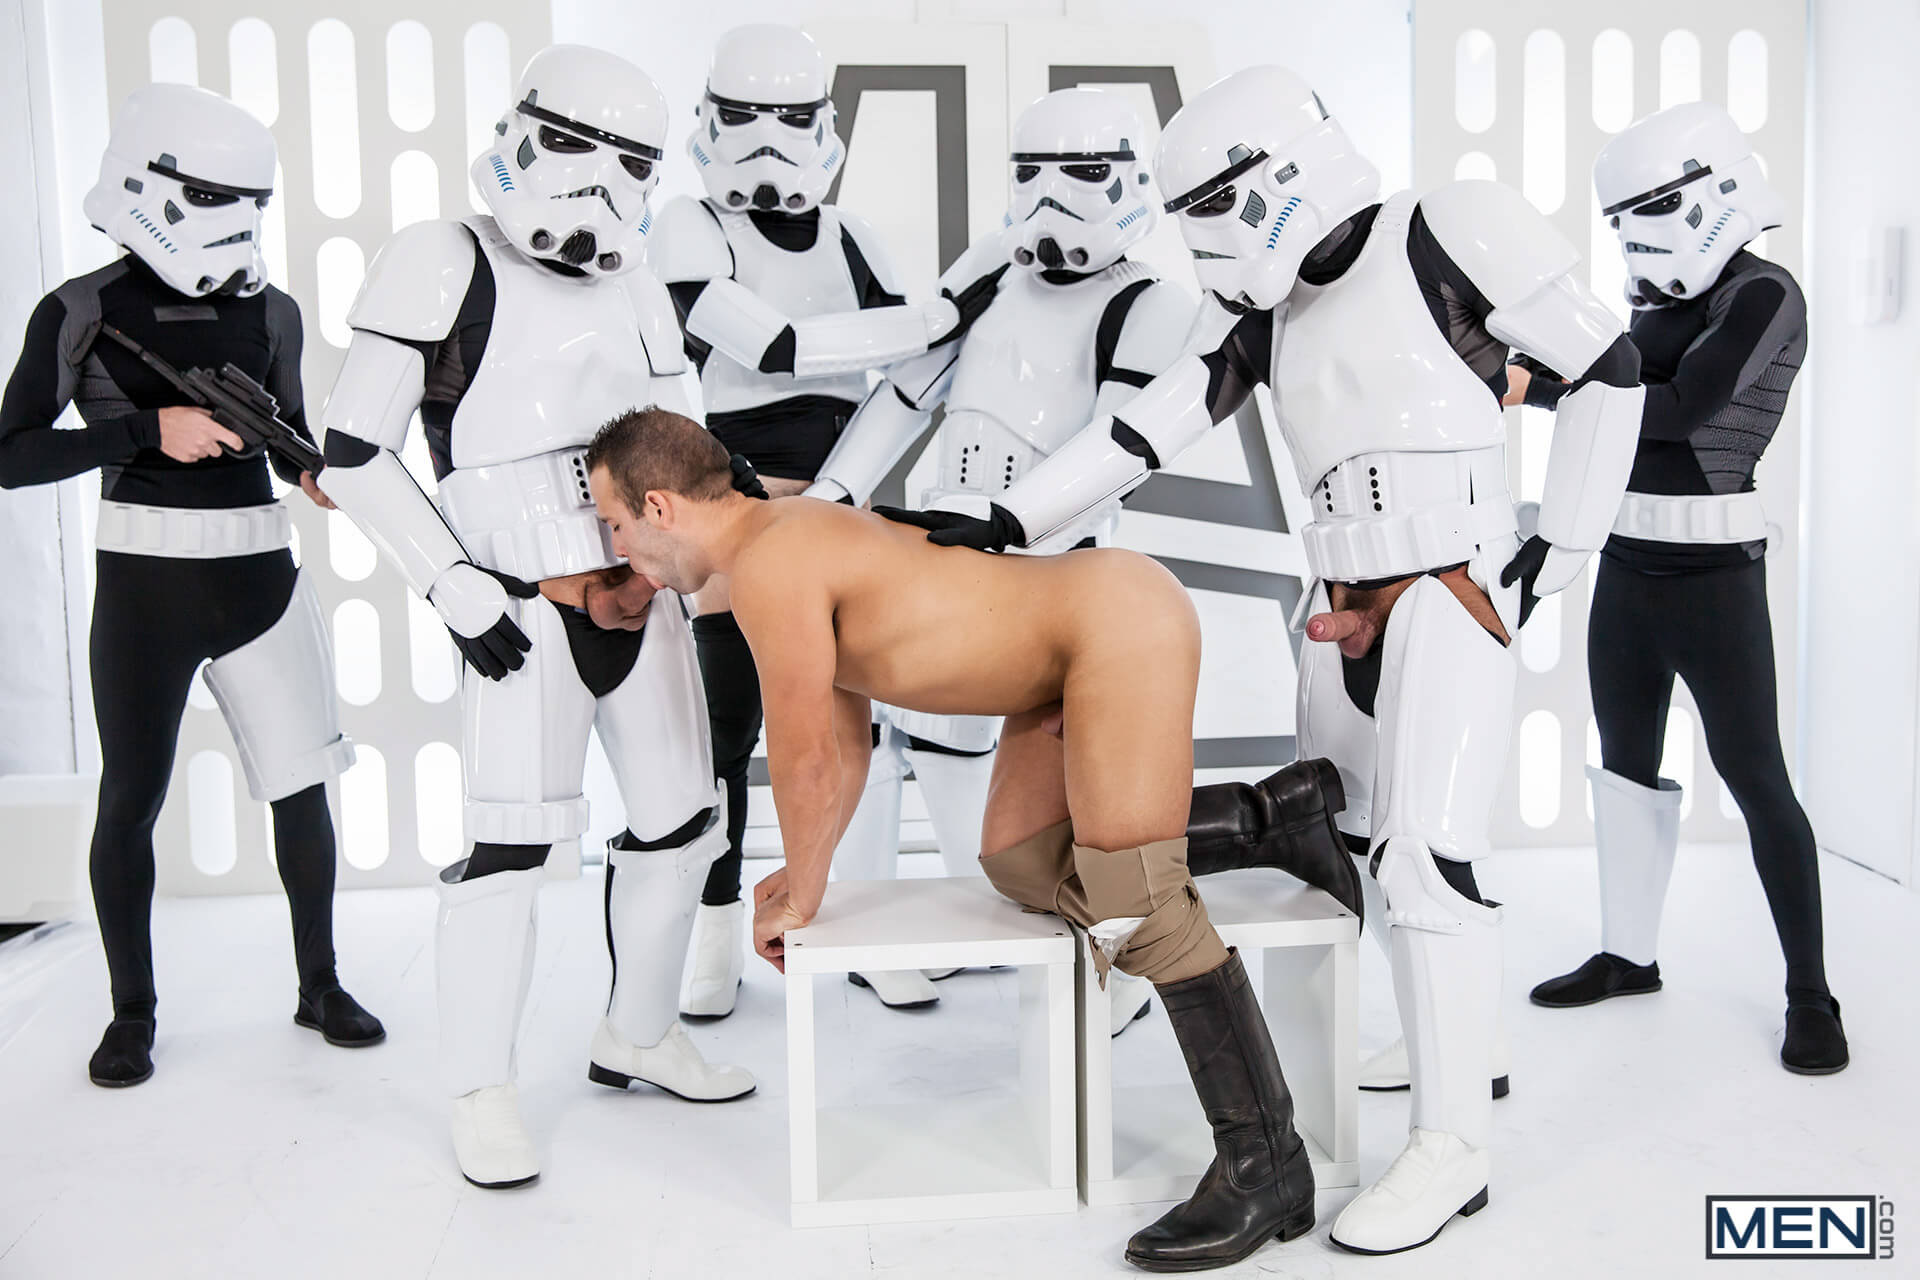 men jizz orgy star wars 4 a gay xxx parody hector de silva luke adams paddy obrian troopers gay porn blog image 63